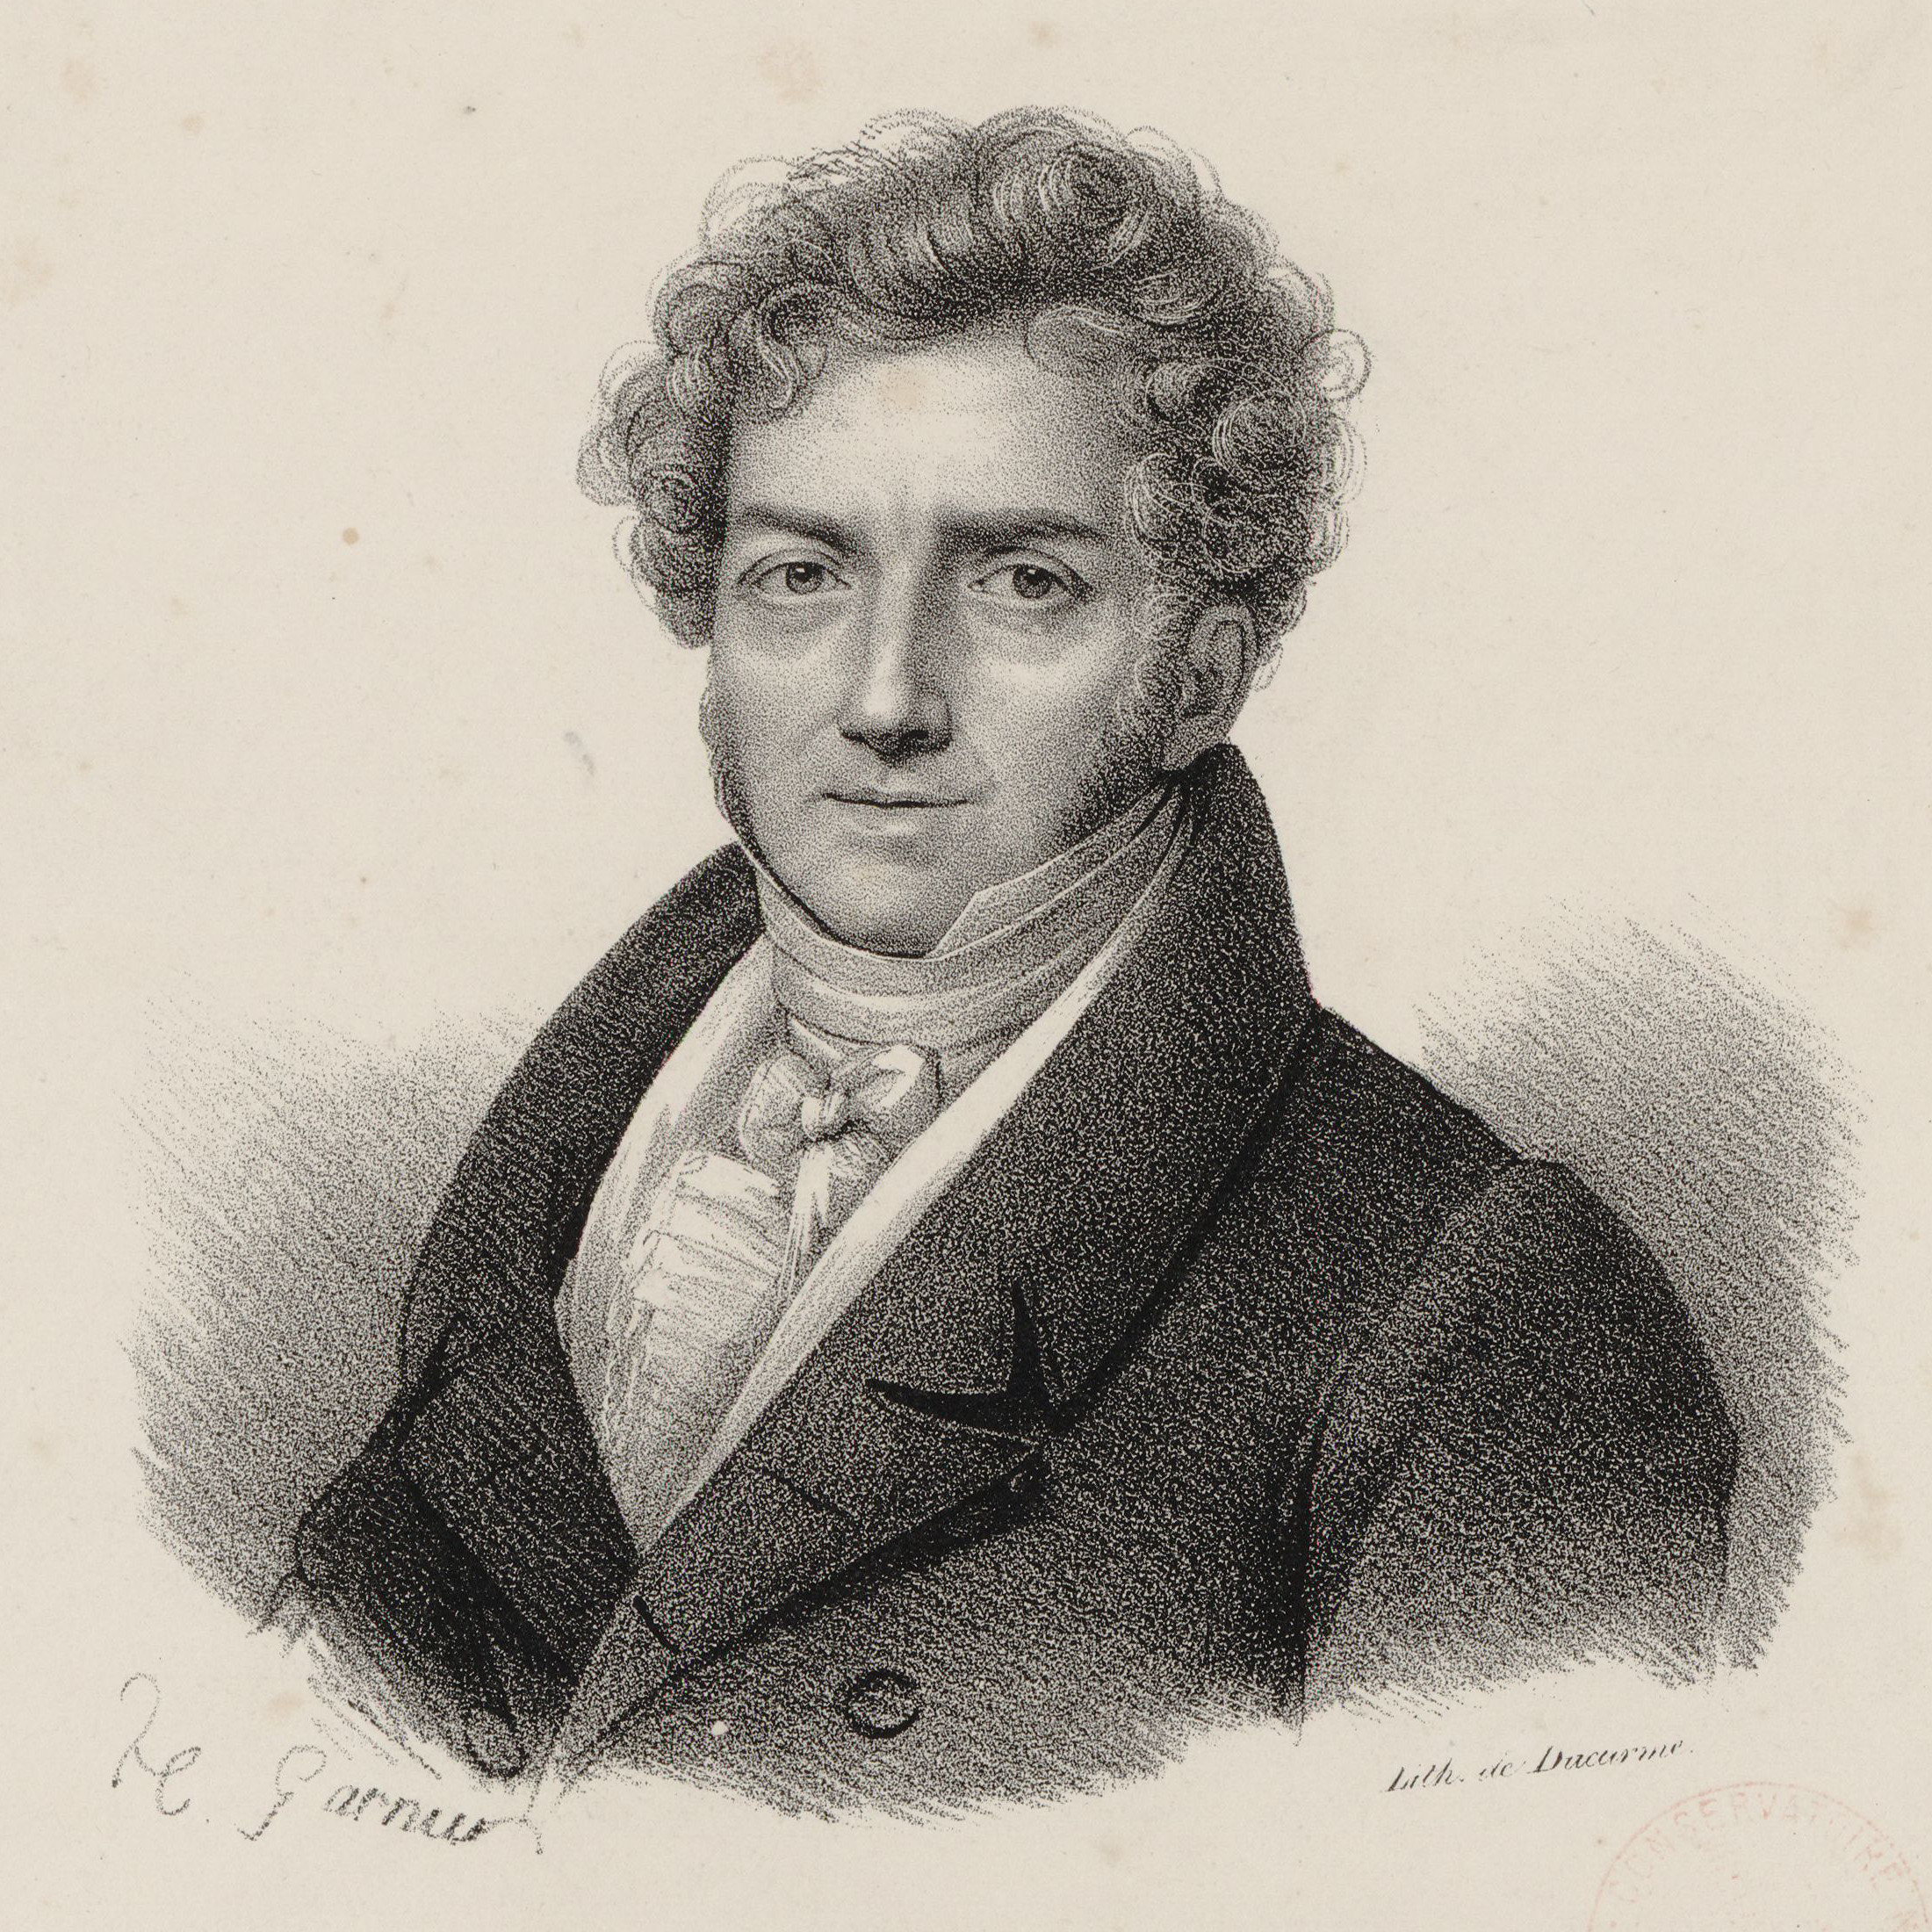 http://upload.wikimedia.org/wikipedia/commons/0/07/Fr-Adrien_Boieldieu.jpg